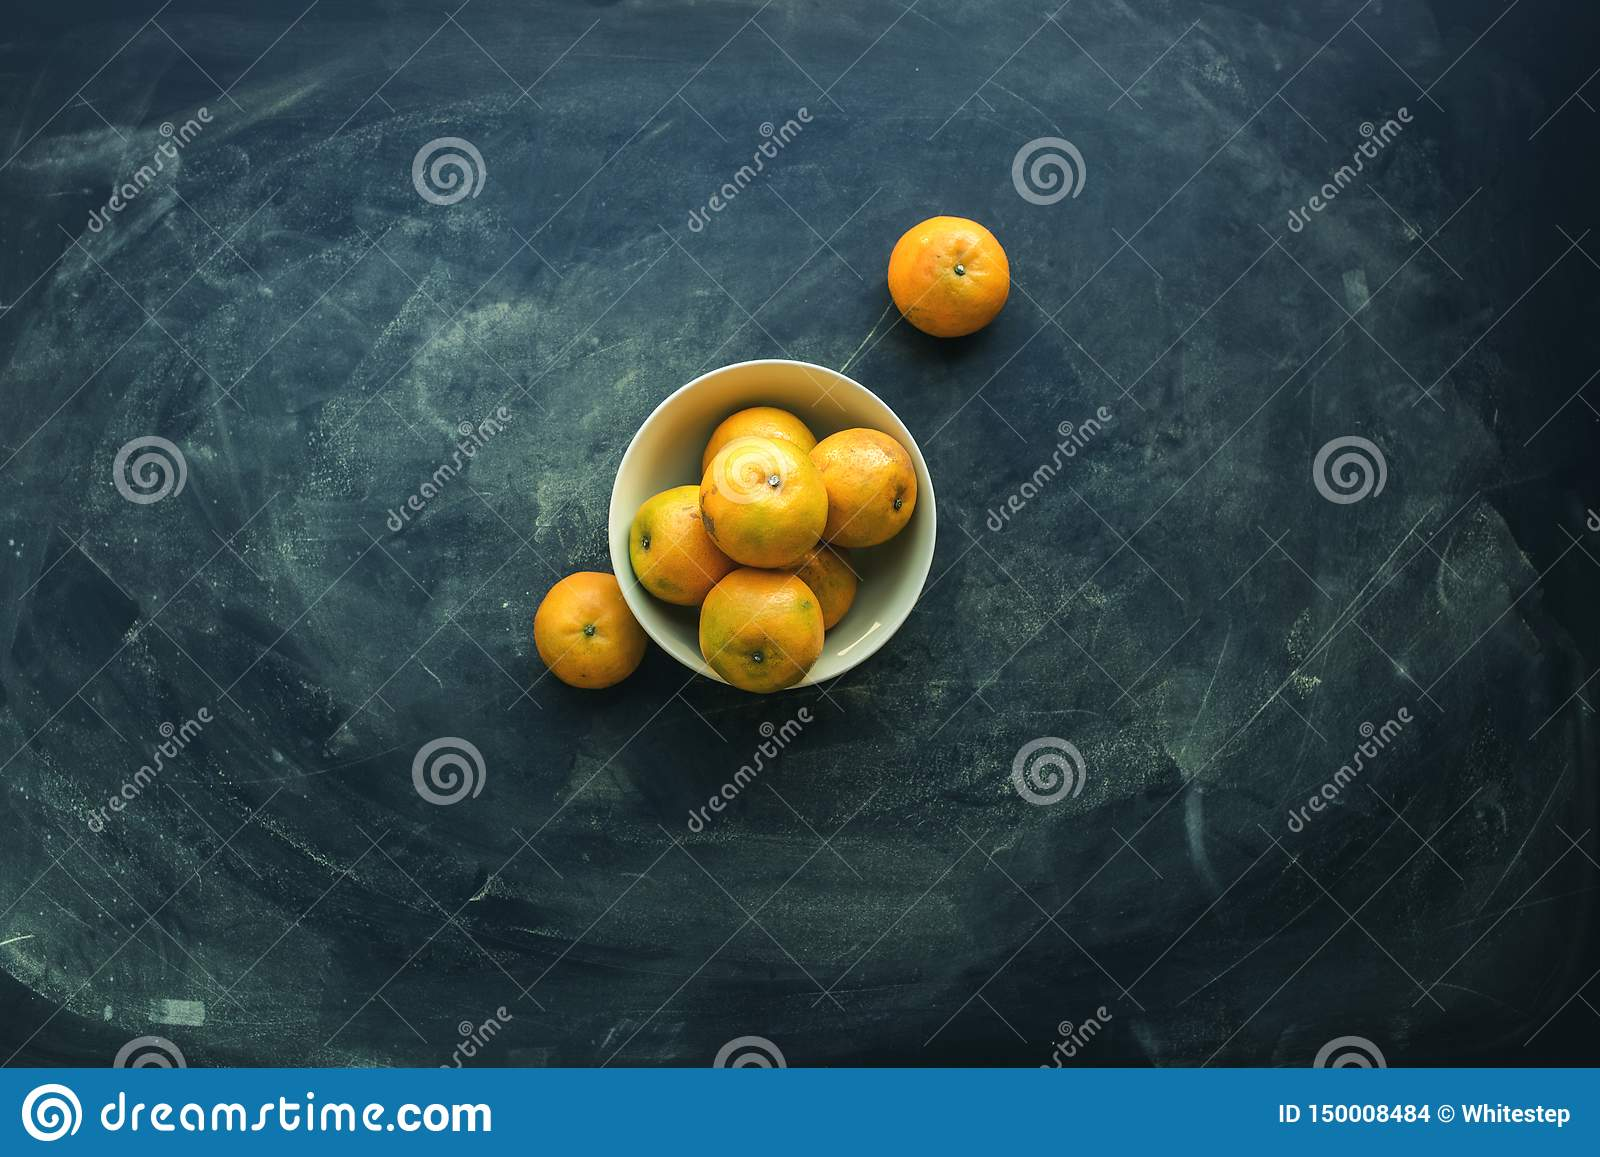 Tangerines in bowl on dark background. Super food